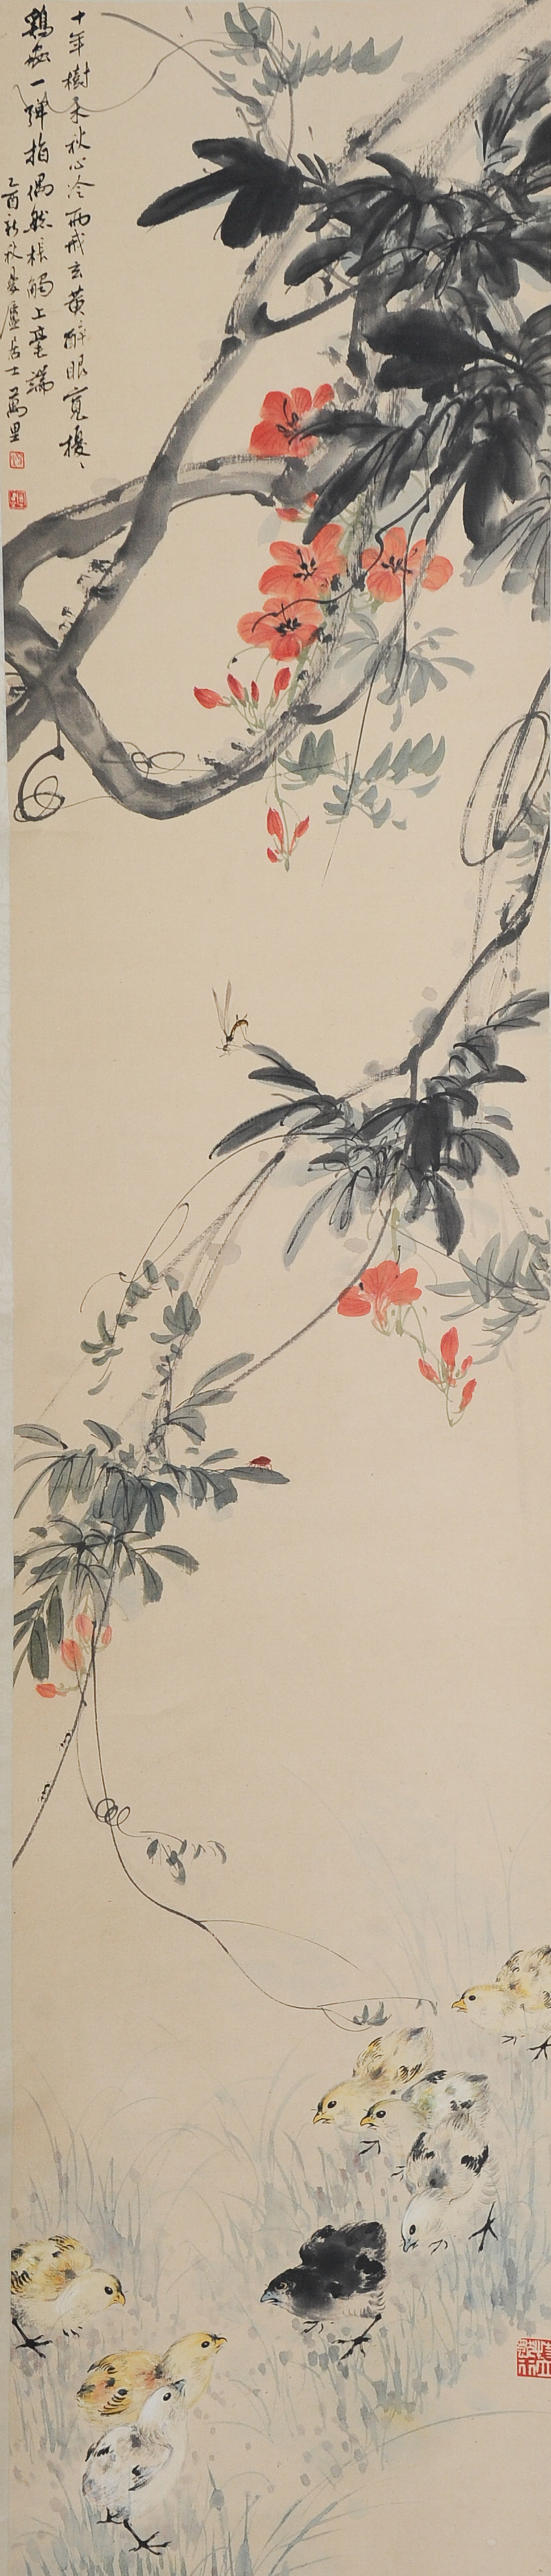 SCROLL PAINTING OF CHICKS & FLOWERS BY MA WANLI